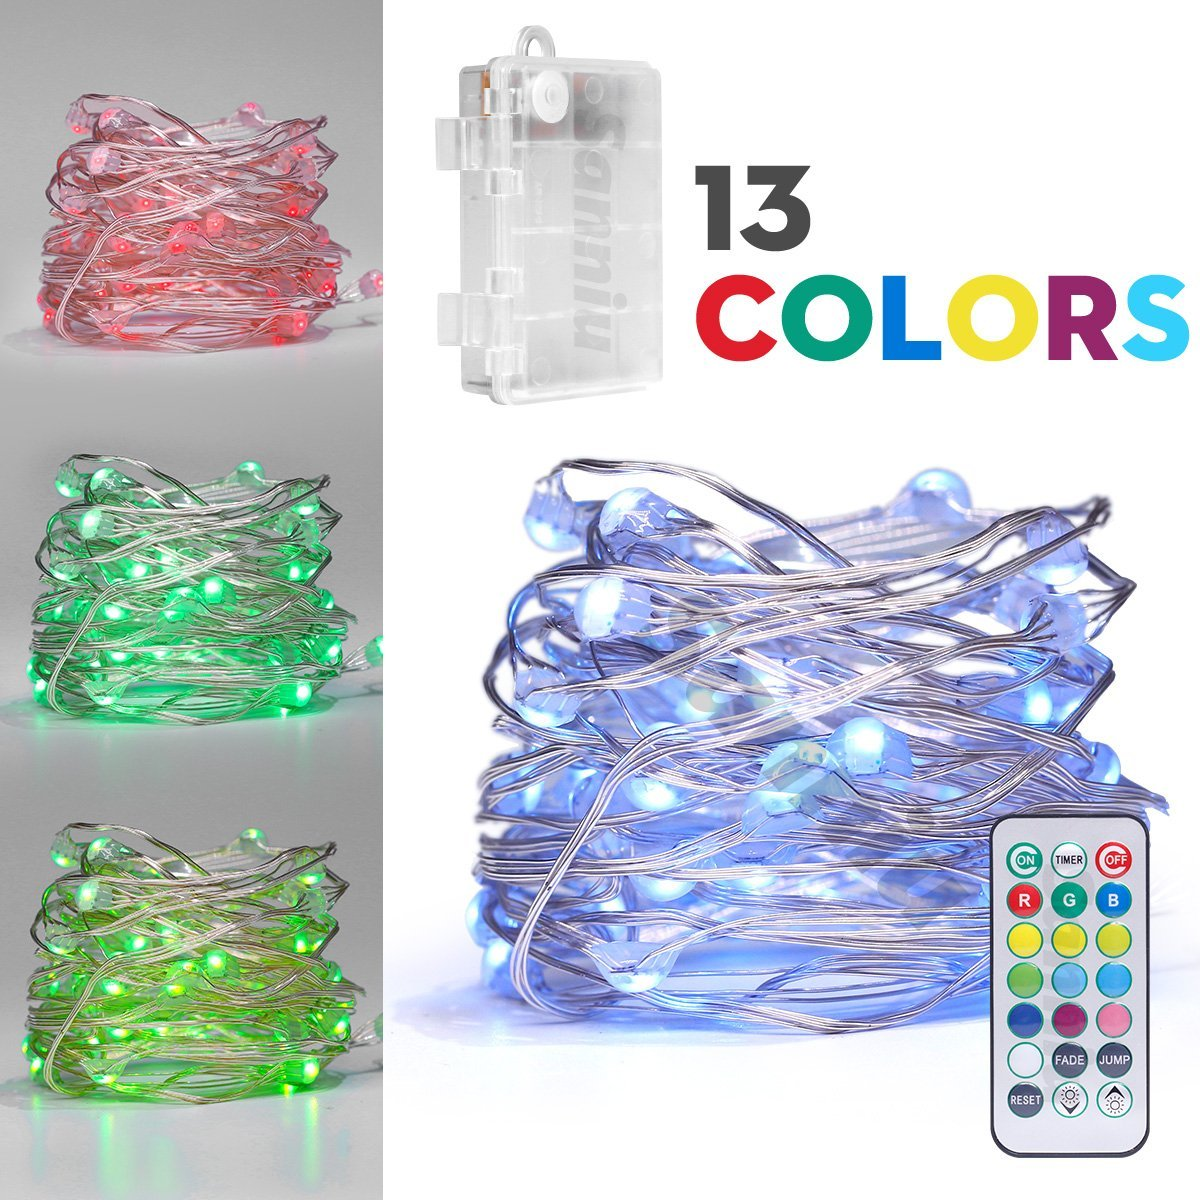 Fairydecor Led String Lights Battery Powered Multi Colour Changing Outdoor Wiring For Christmas Fairy With Remote 50 Leds Indoor Decorative Silver Wire Bedroom Patio Garden Stroller Tree 16ft